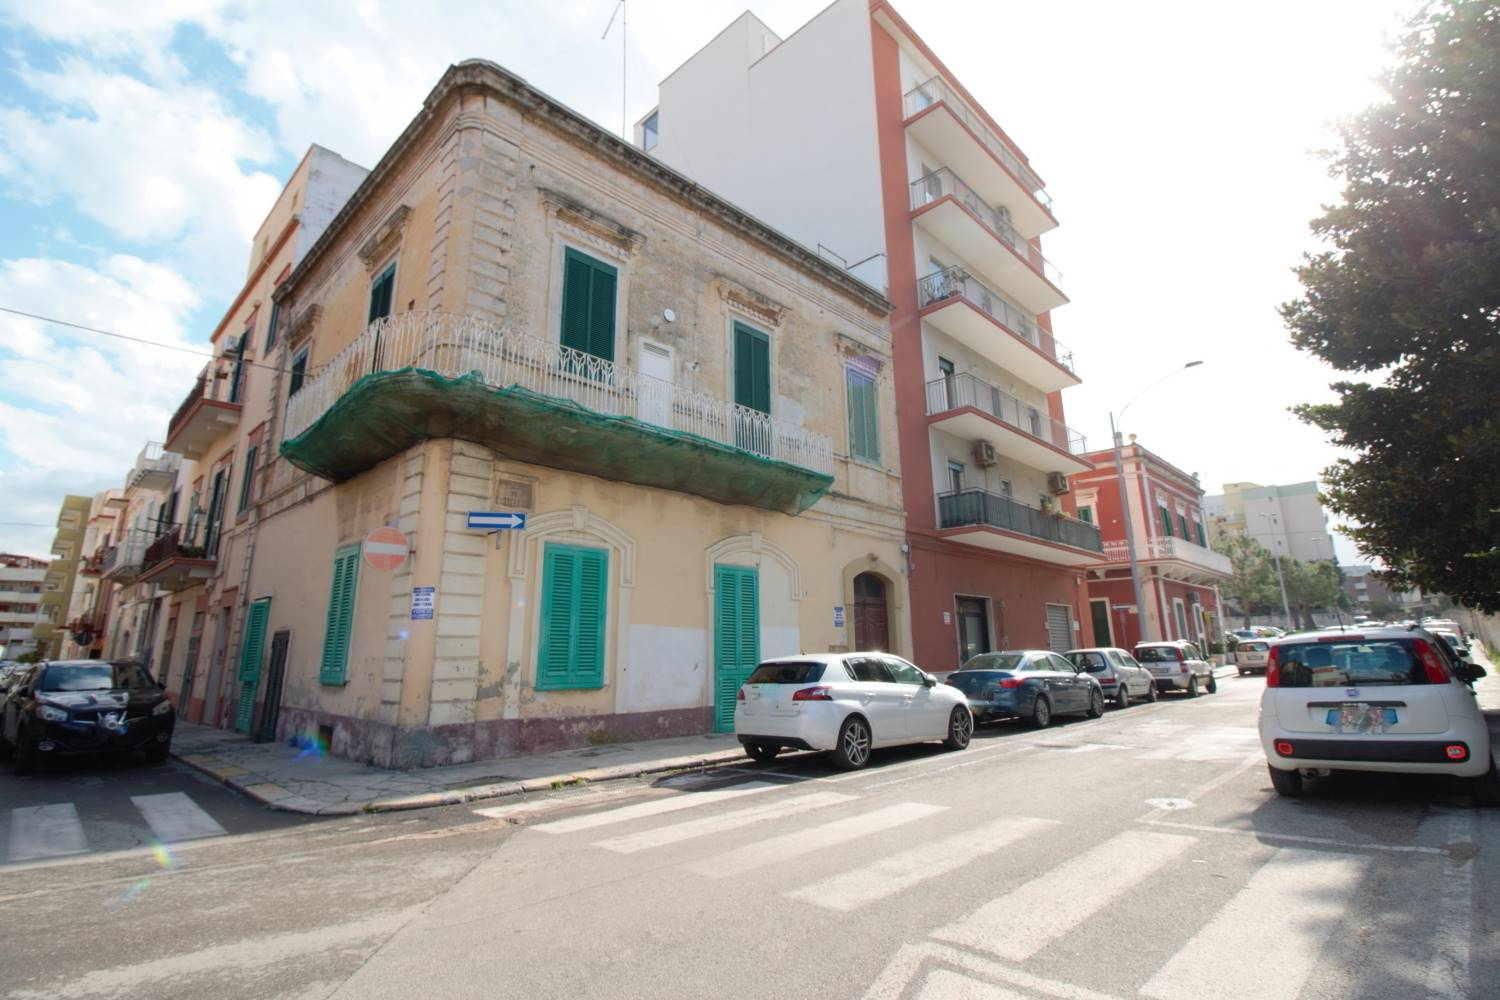 MONOPOLI, Apartment for sale of 105 Sq. mt., Habitable, Heating Individual heating system, Energetic class: G, Epi: 165 kwh/m2 year, placed at Ground, composed by: 4 Rooms, Separate kitchen, , 3